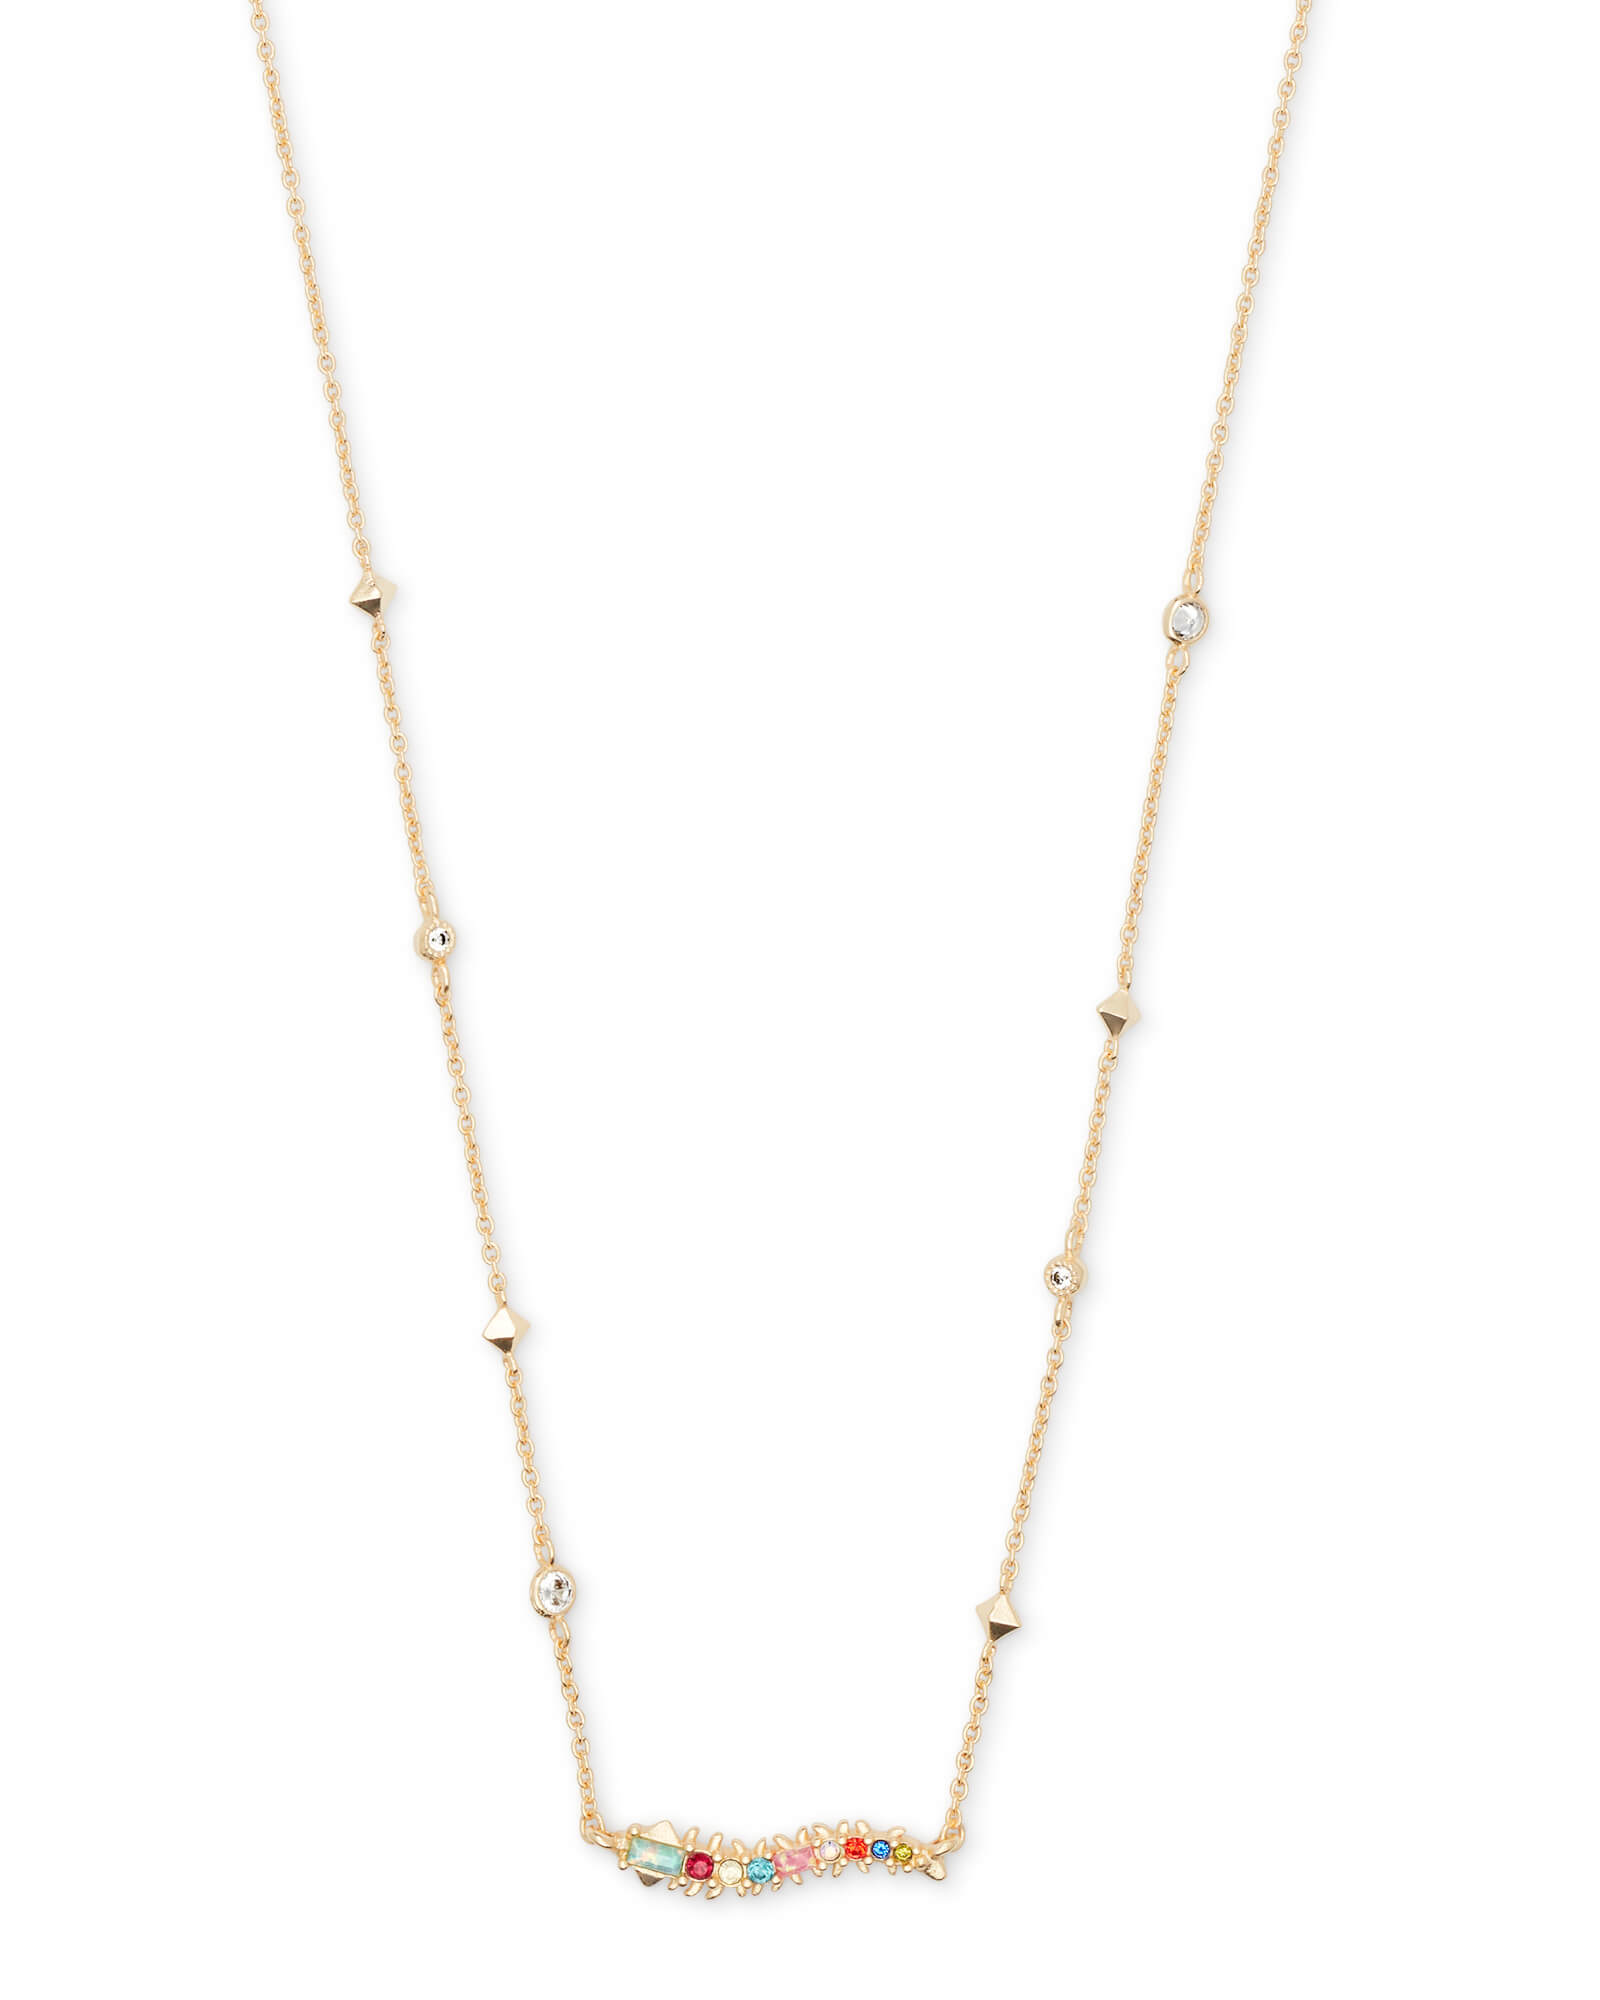 Kim Gold Pendant Necklace In Multi Mix by Kendra Scott